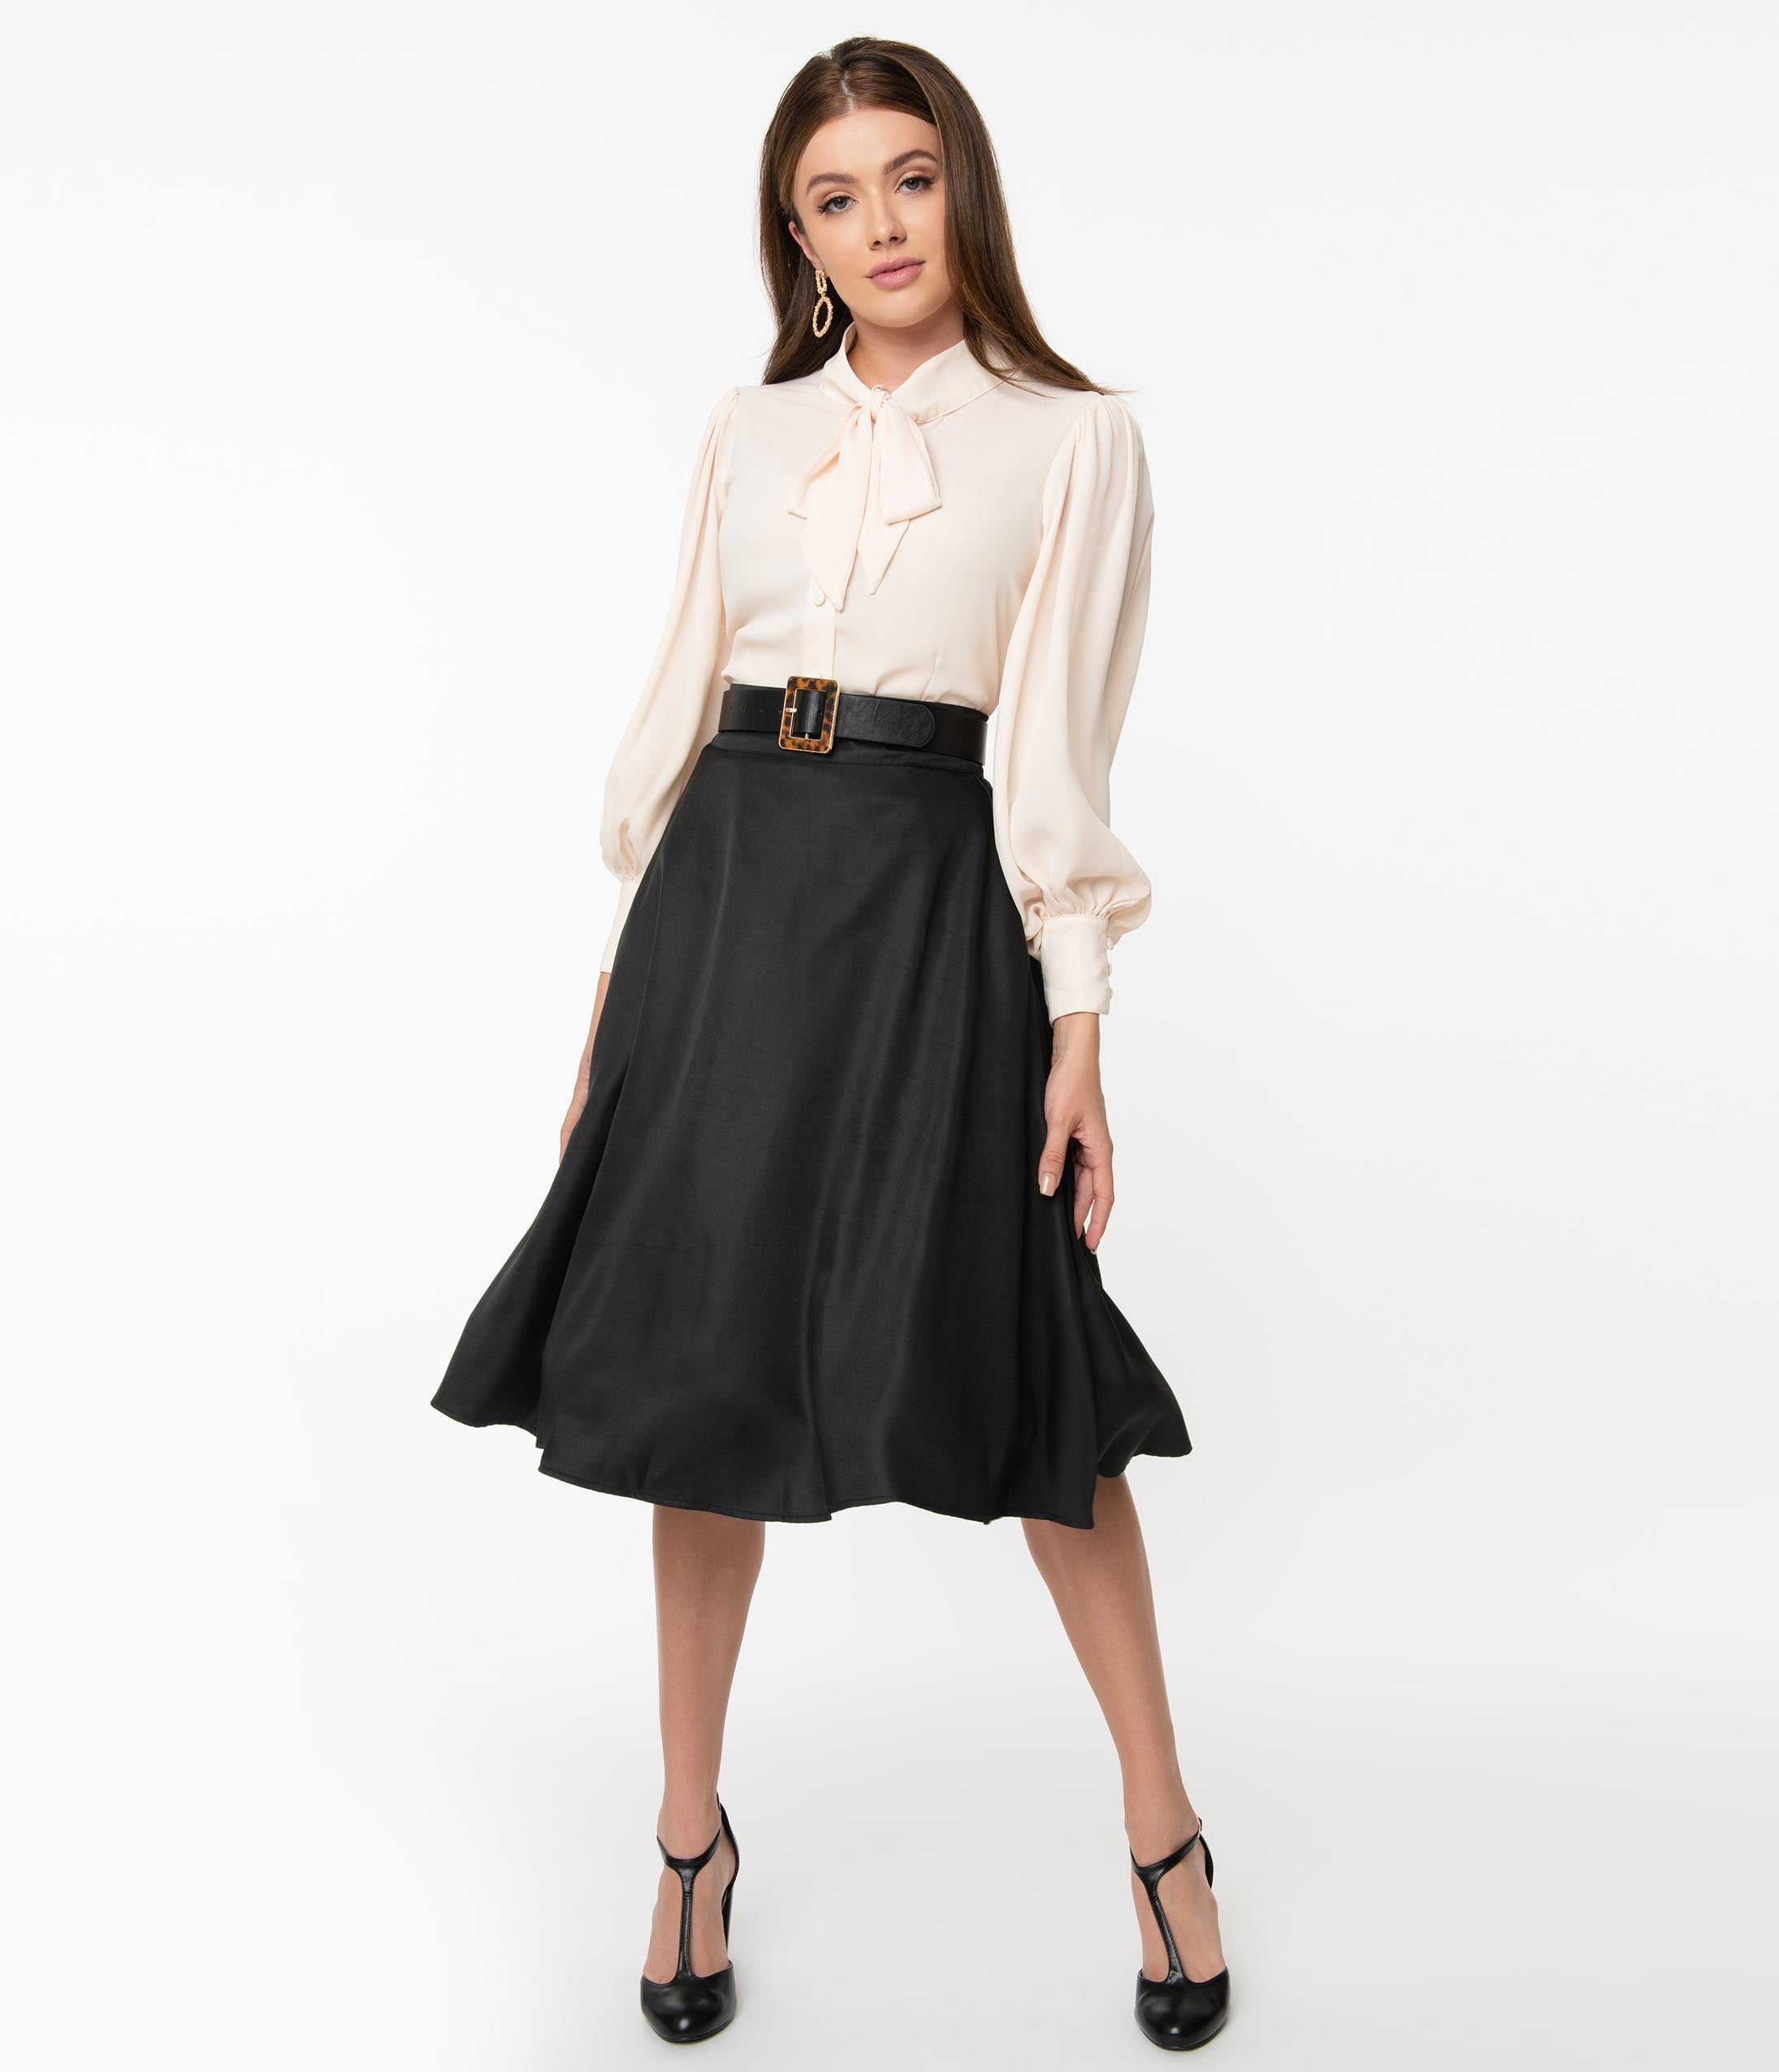 1940s Teenage Fashion: Girls Unique Vintage Retro Style Black High Waist Vivien Swing Skirt $48.00 AT vintagedancer.com